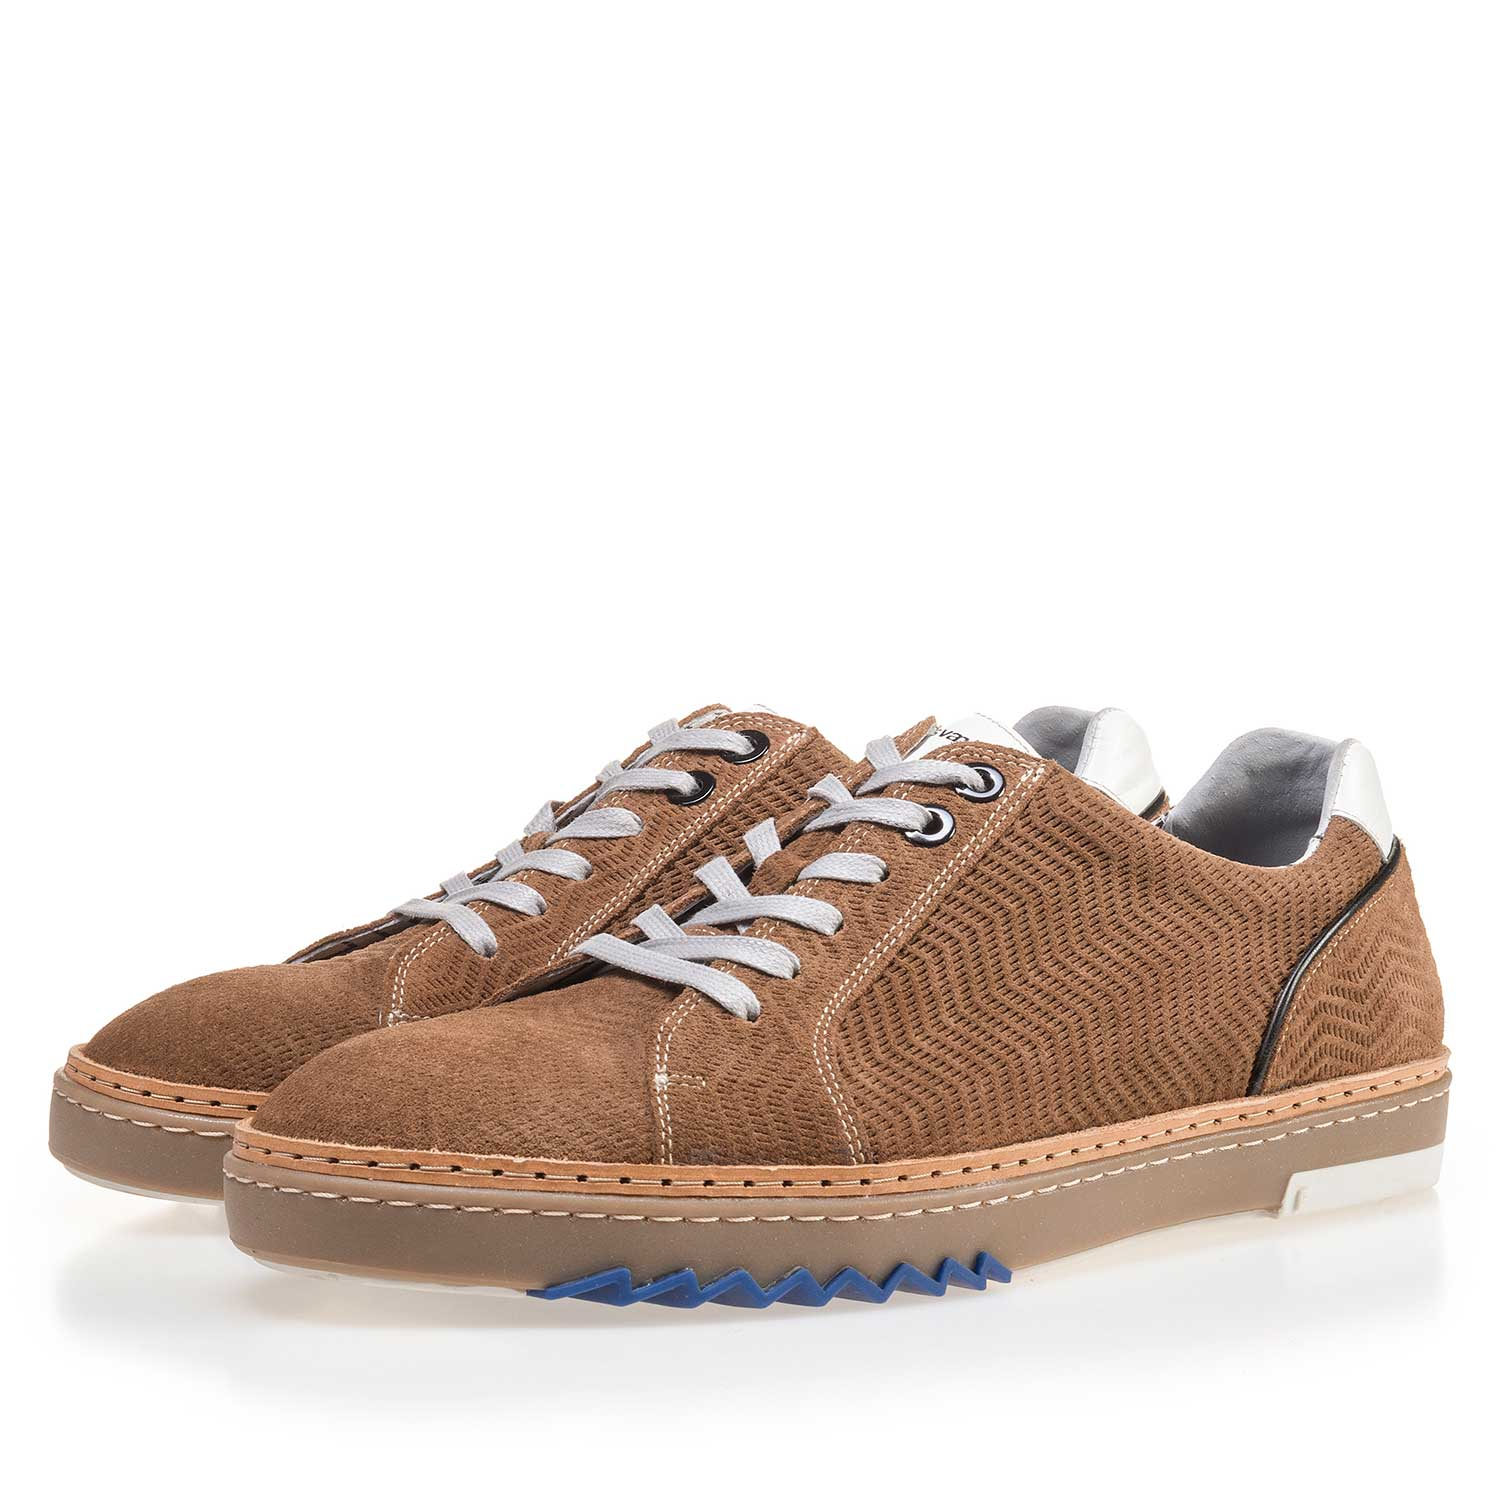 14057/06 - Cognac-coloured, patterned leather sneaker